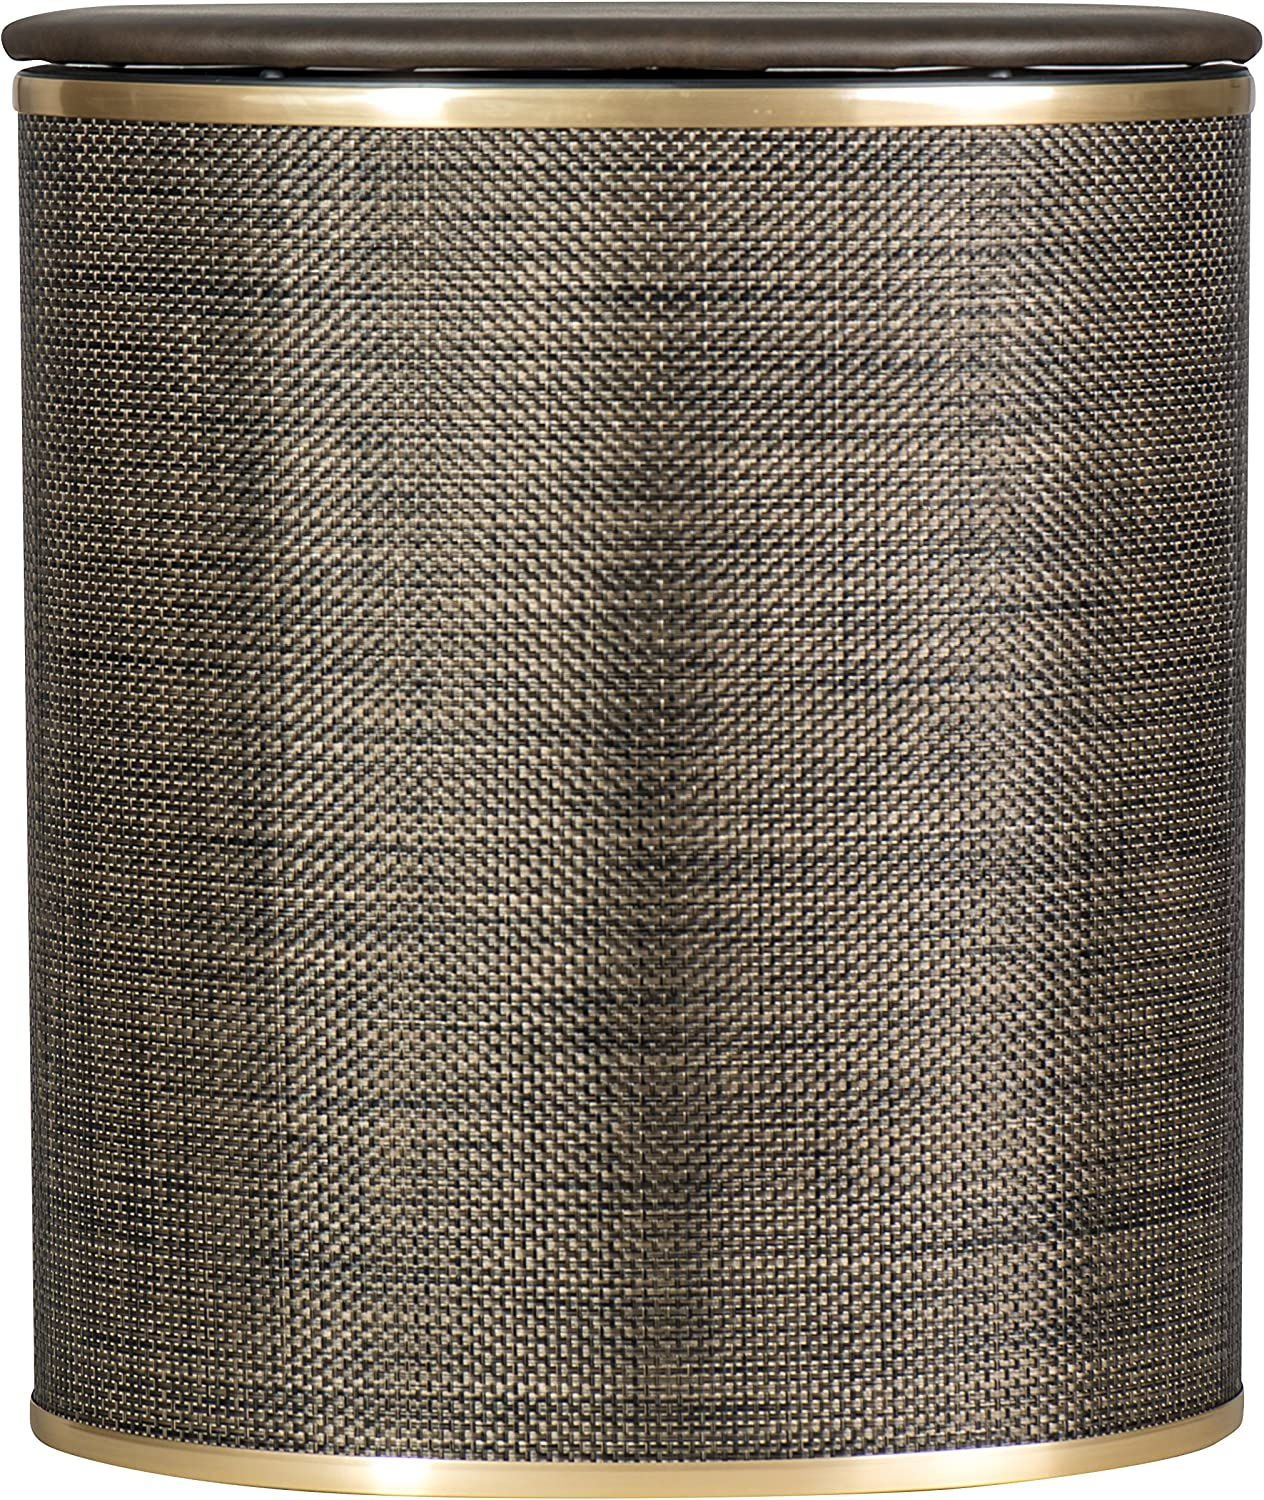 Redmon 2331 Bowed Front Hamper, Espresso/Gold